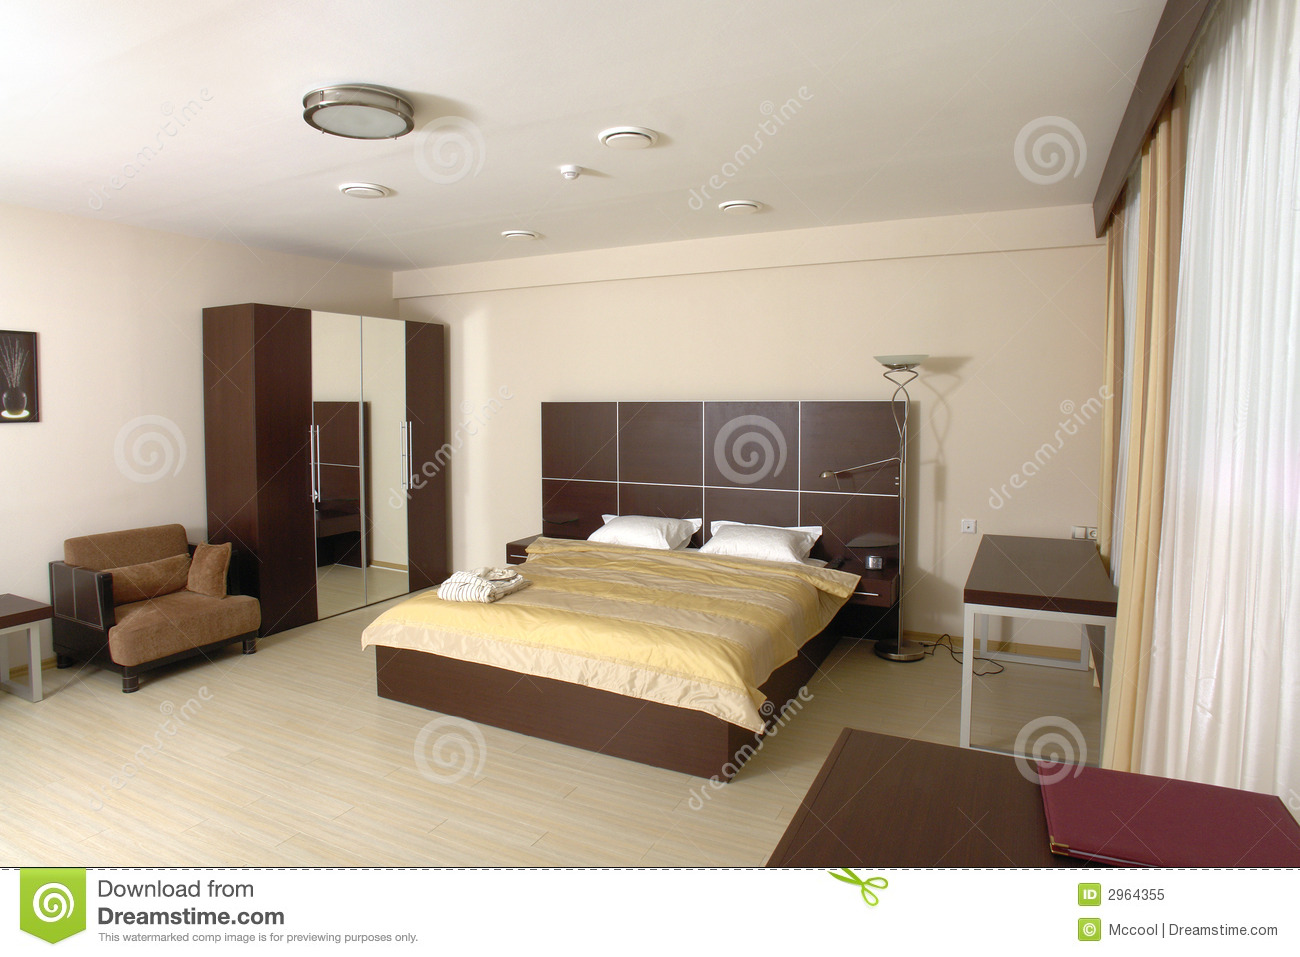 Chambre coucher moderne photo libre de droits image 2964355 for Photo de chambre a coucher moderne